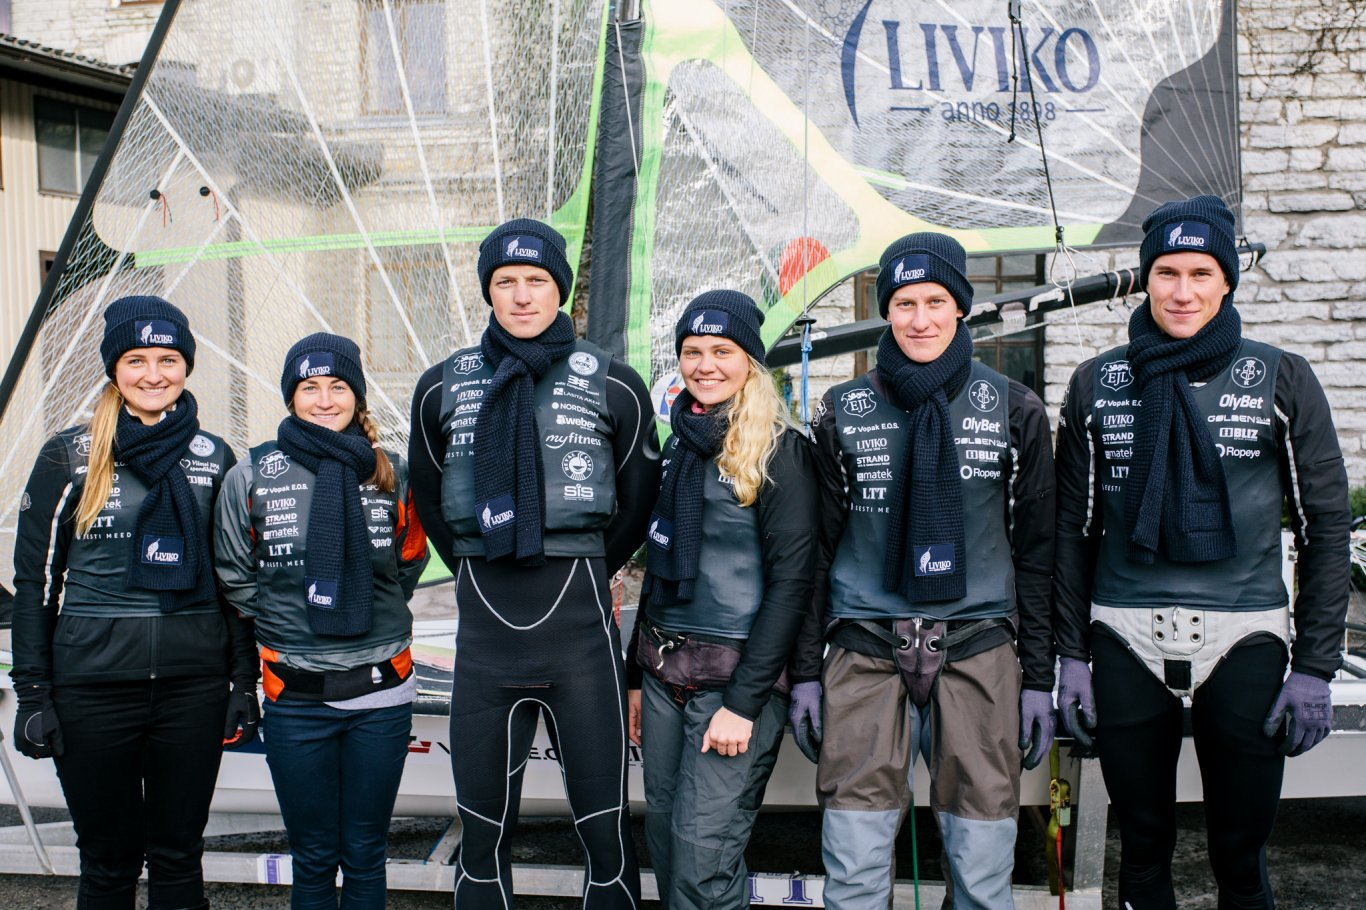 ESTONIAN SAILORS STRIVING FOR THE TOP 10 AT THE TOKYO OLYMPICS